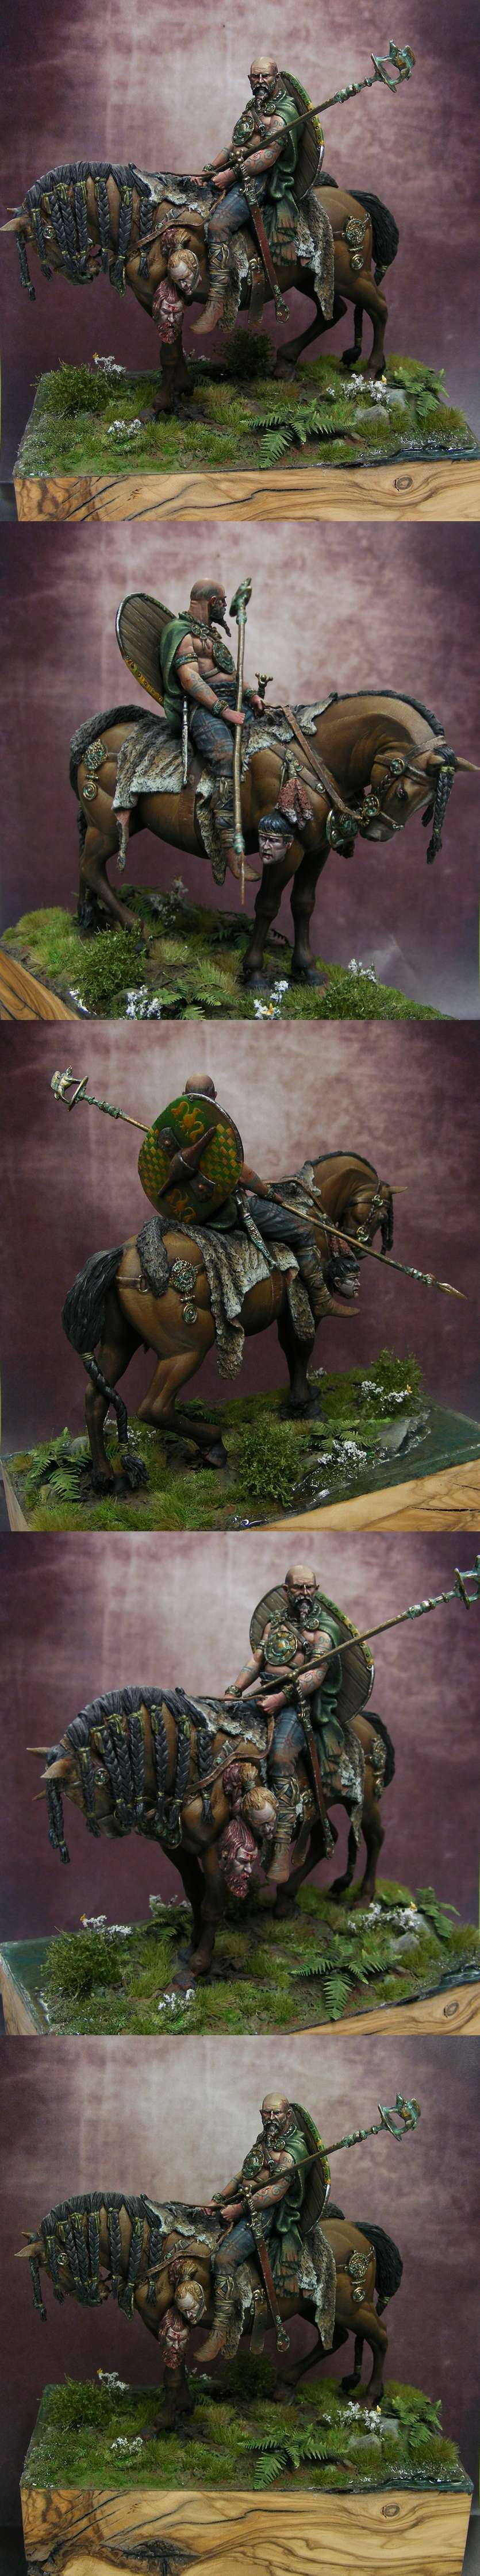 Celtic warrior on horse